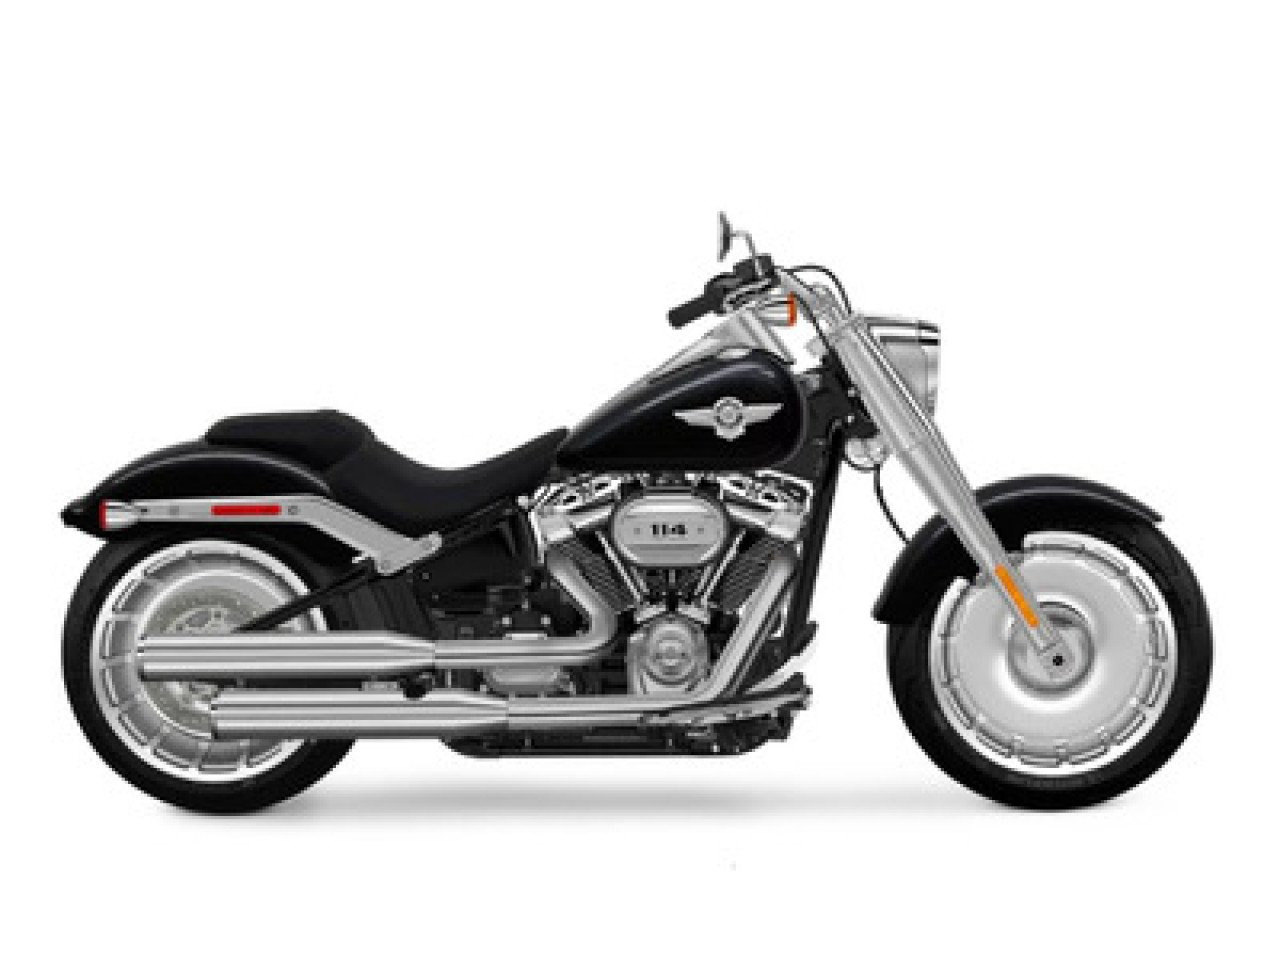 2018 Harley-Davidson Softail for sale near Morrow, Georgia 30260 - Motorcycles on Autotrader